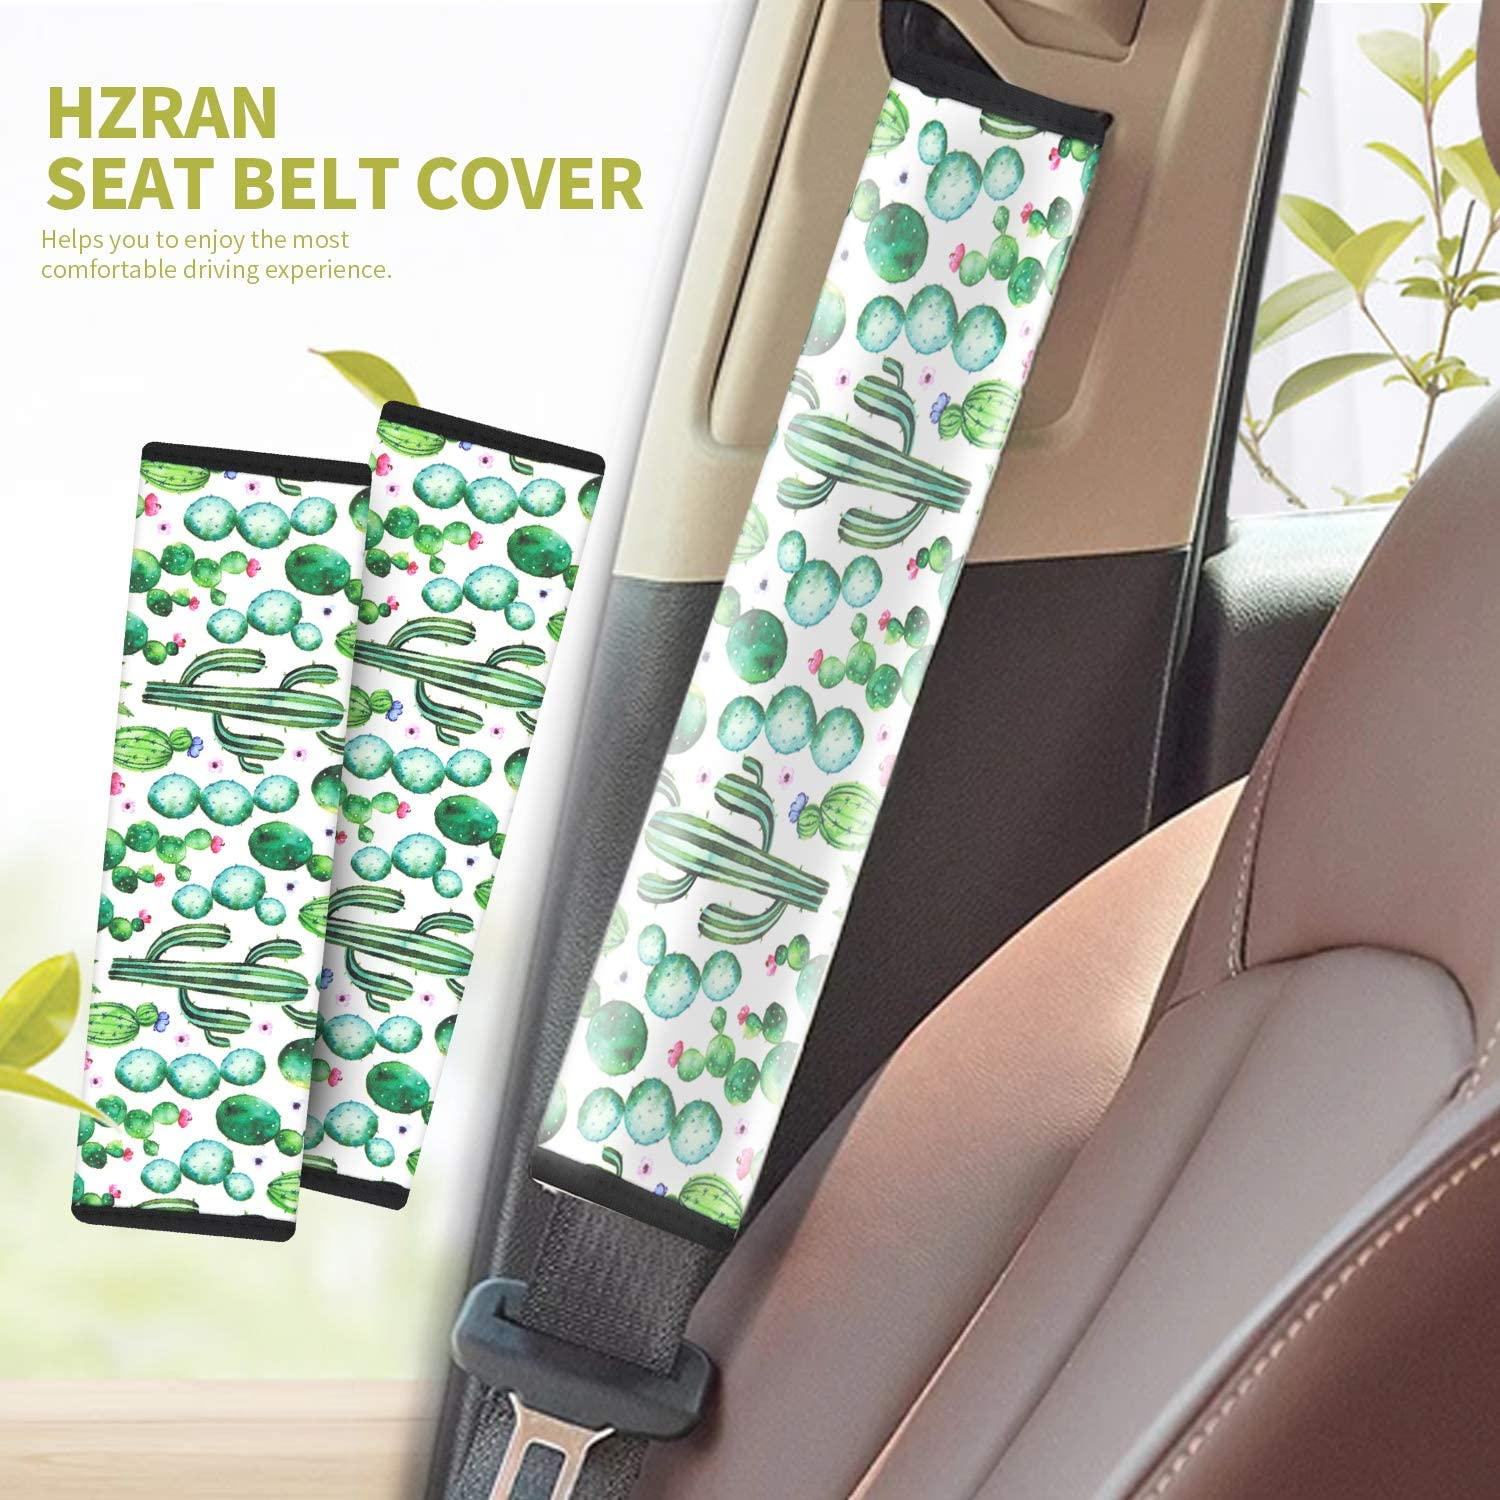 Hzran 2 Packs Seat Belt Cover-Seat Belt Clips-Seat Belt Adjuster-Shoulder Strap Pad-Safety Belt Cover-Comfortable Experience with Safety and Protection for Adults /& Kids